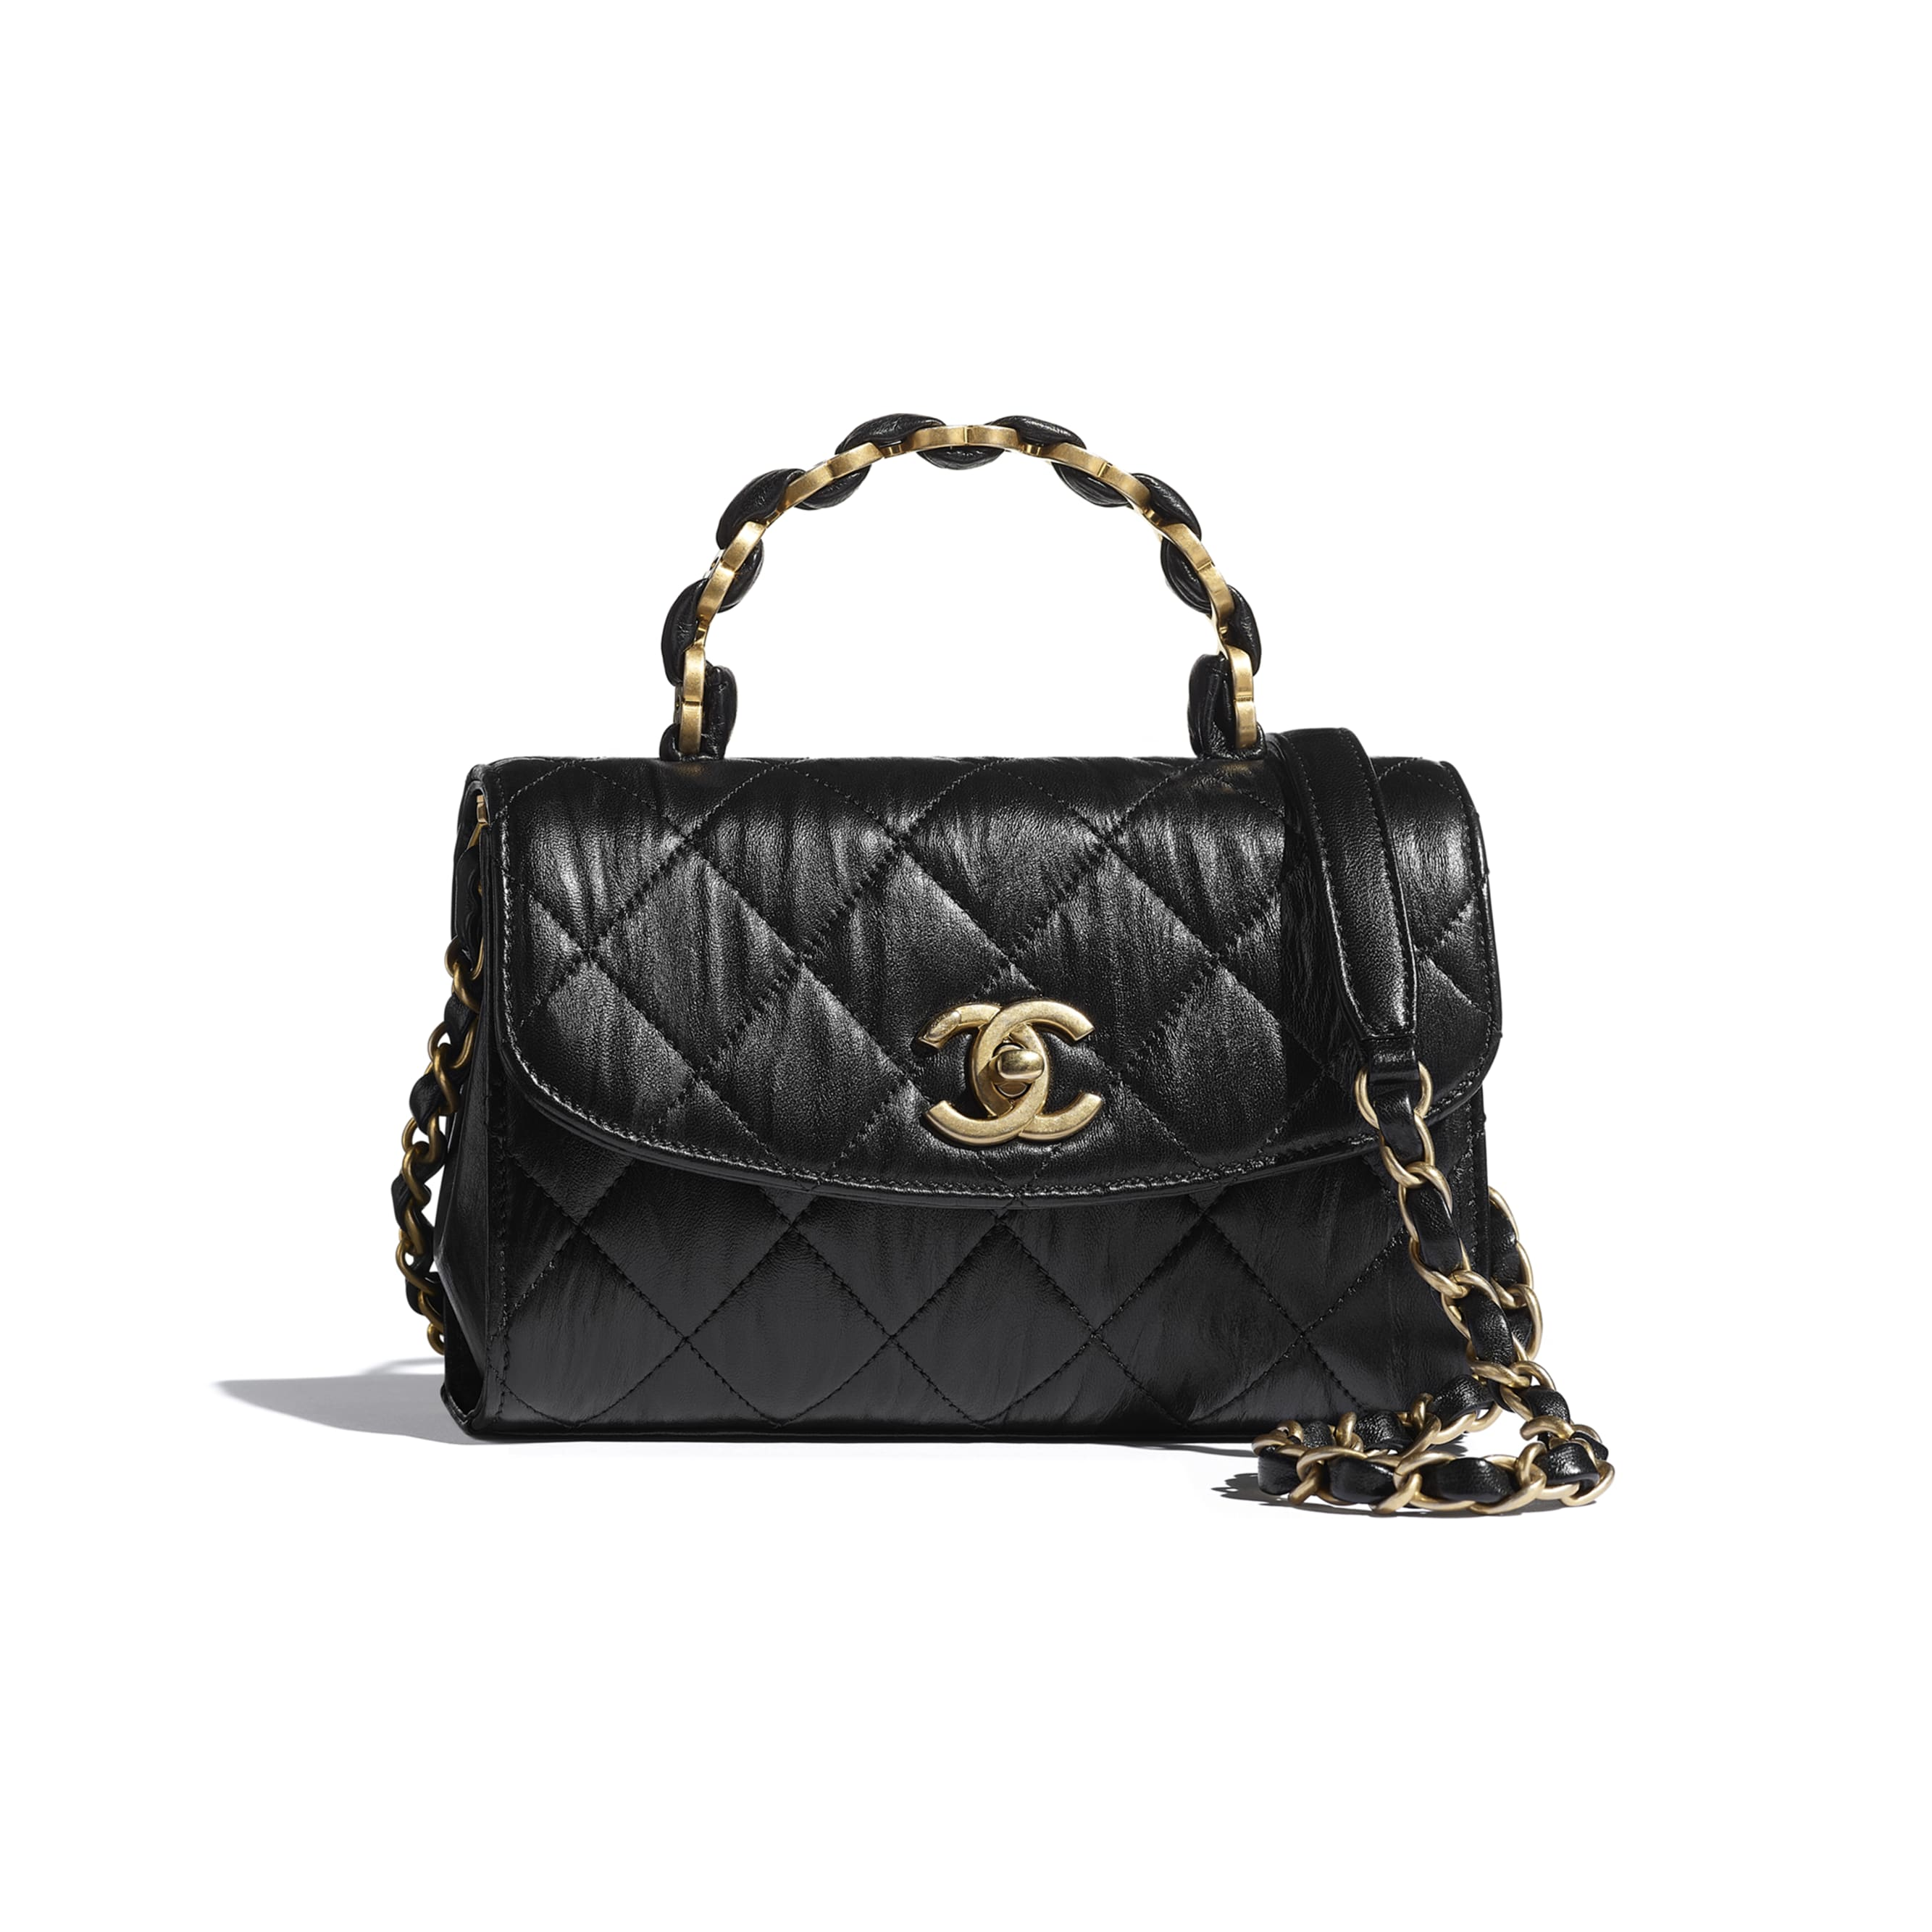 Mini Flap Bag with Top Handle - Black - Crumpled Lambskin & Gold-Tone Metal - CHANEL - Default view - see standard sized version